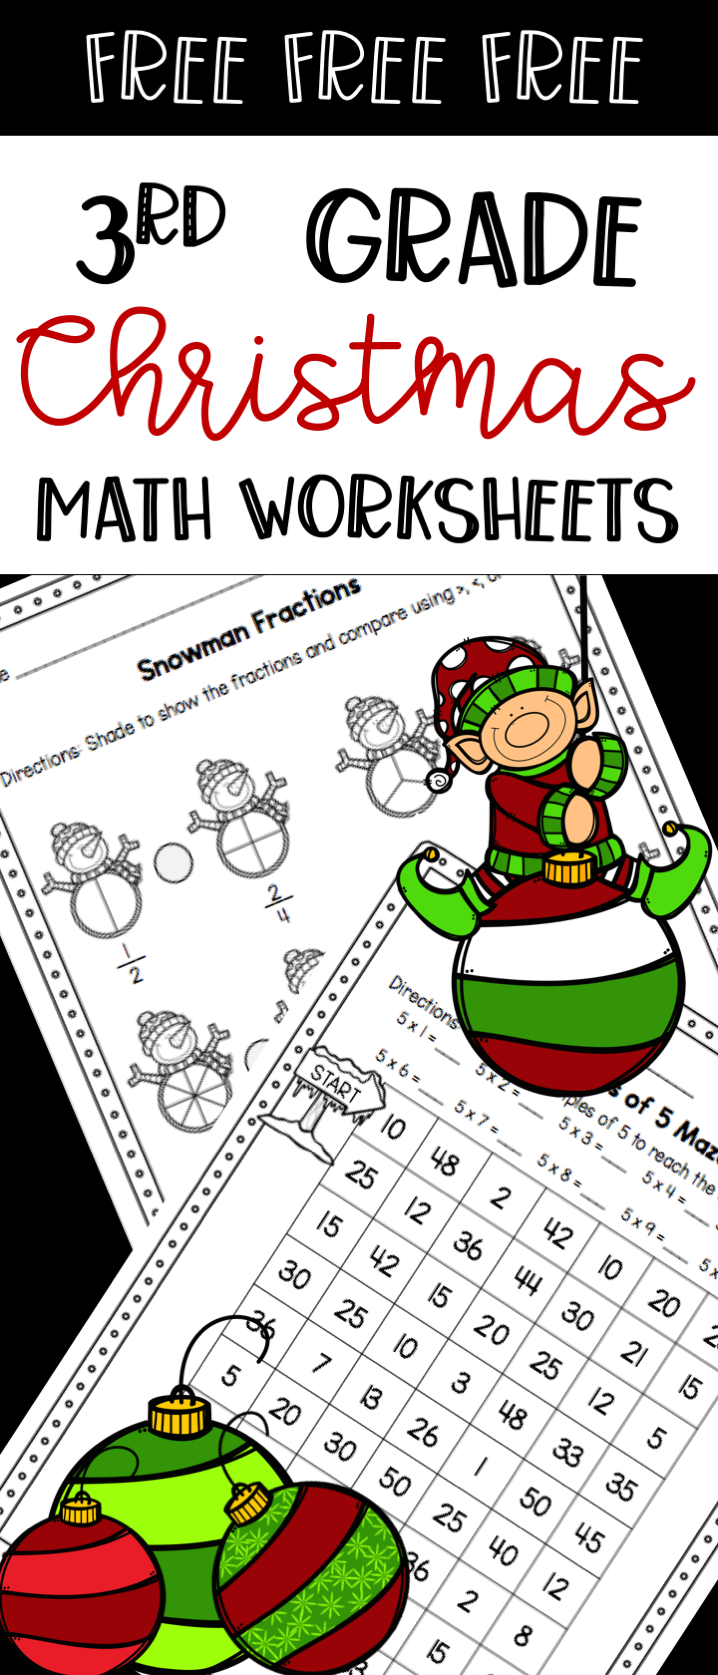 Free 3Rd Grade Christmas Math Worksheets - Comparing